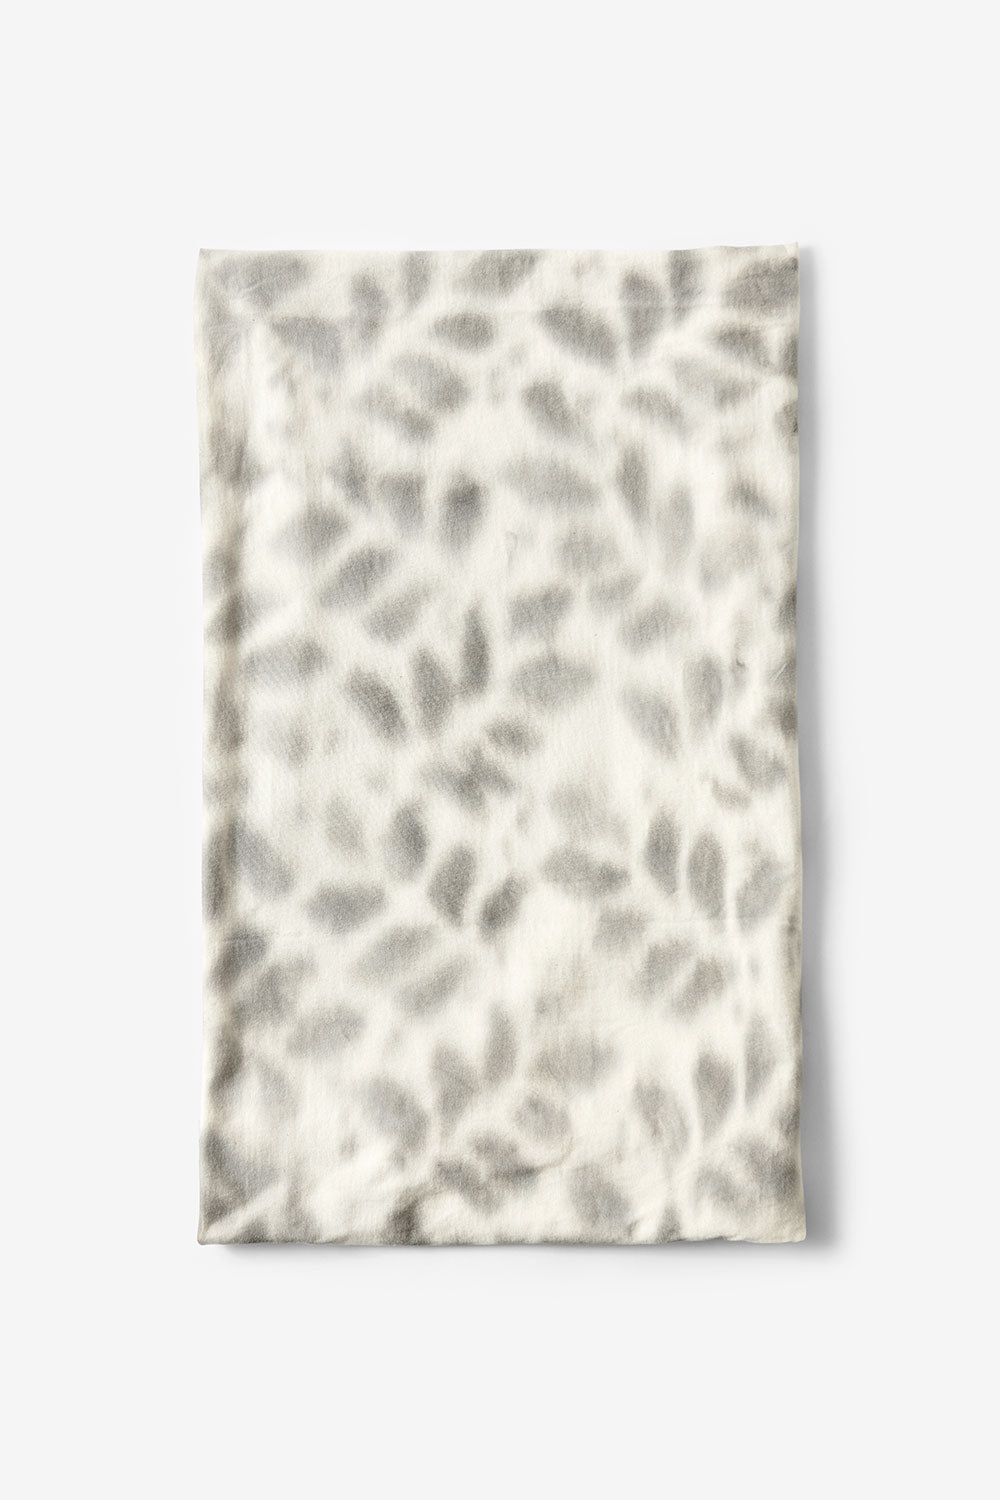 The School of Making Faded Bloomers Fabric Stenciled Floral Pattern in Natural and Light Grey